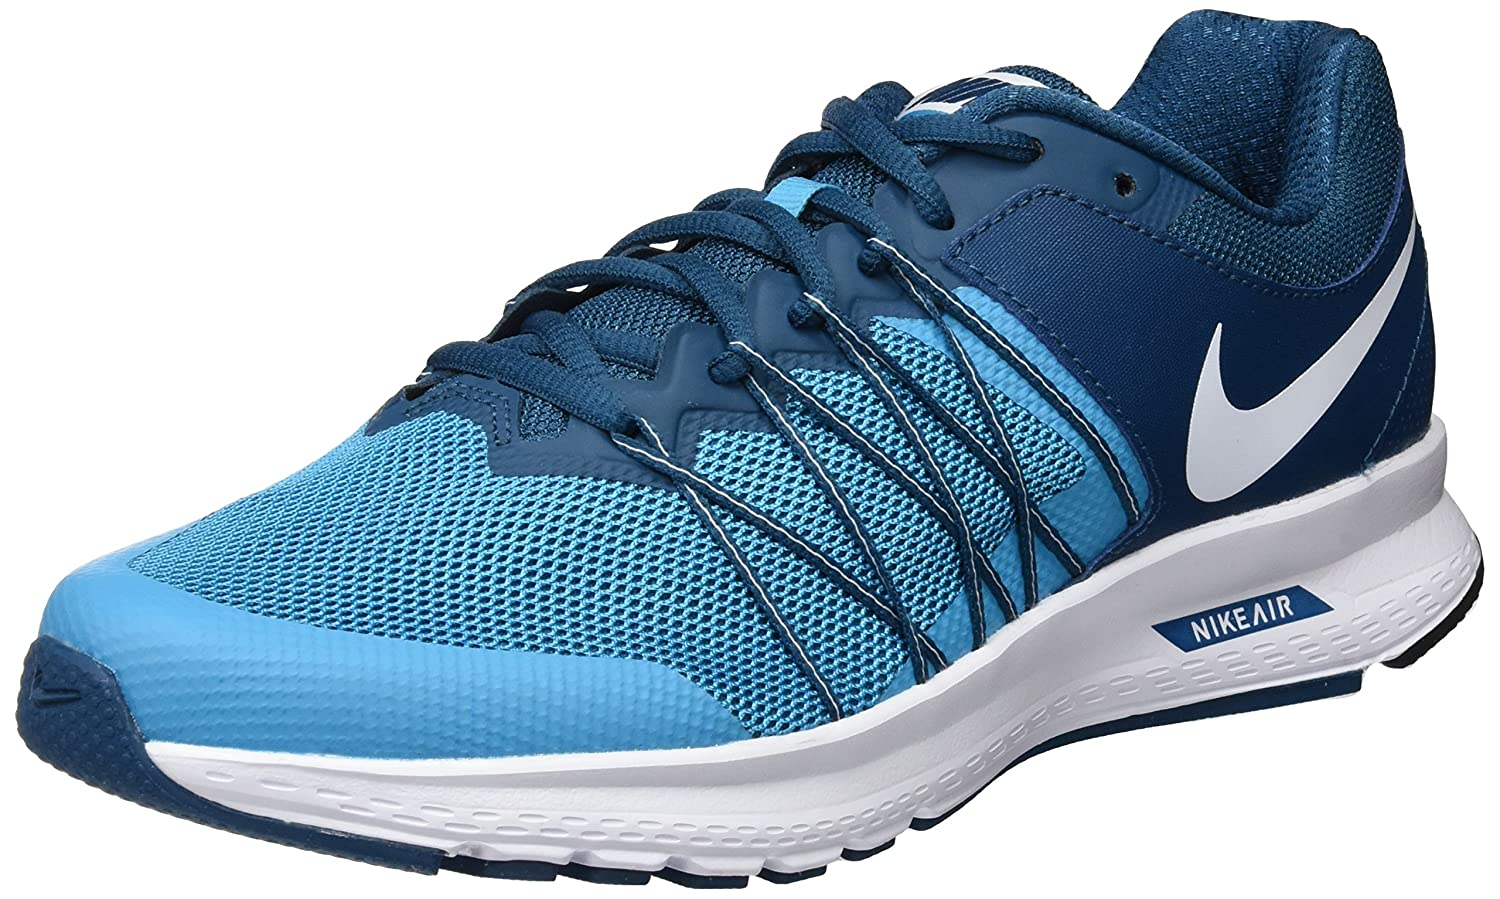 Nike Air Relentless 6 Mens Running Trainers 843836 Sneakers Shoes (UK 7.5 US 8.5 EU 42, Legion Blue White 403)